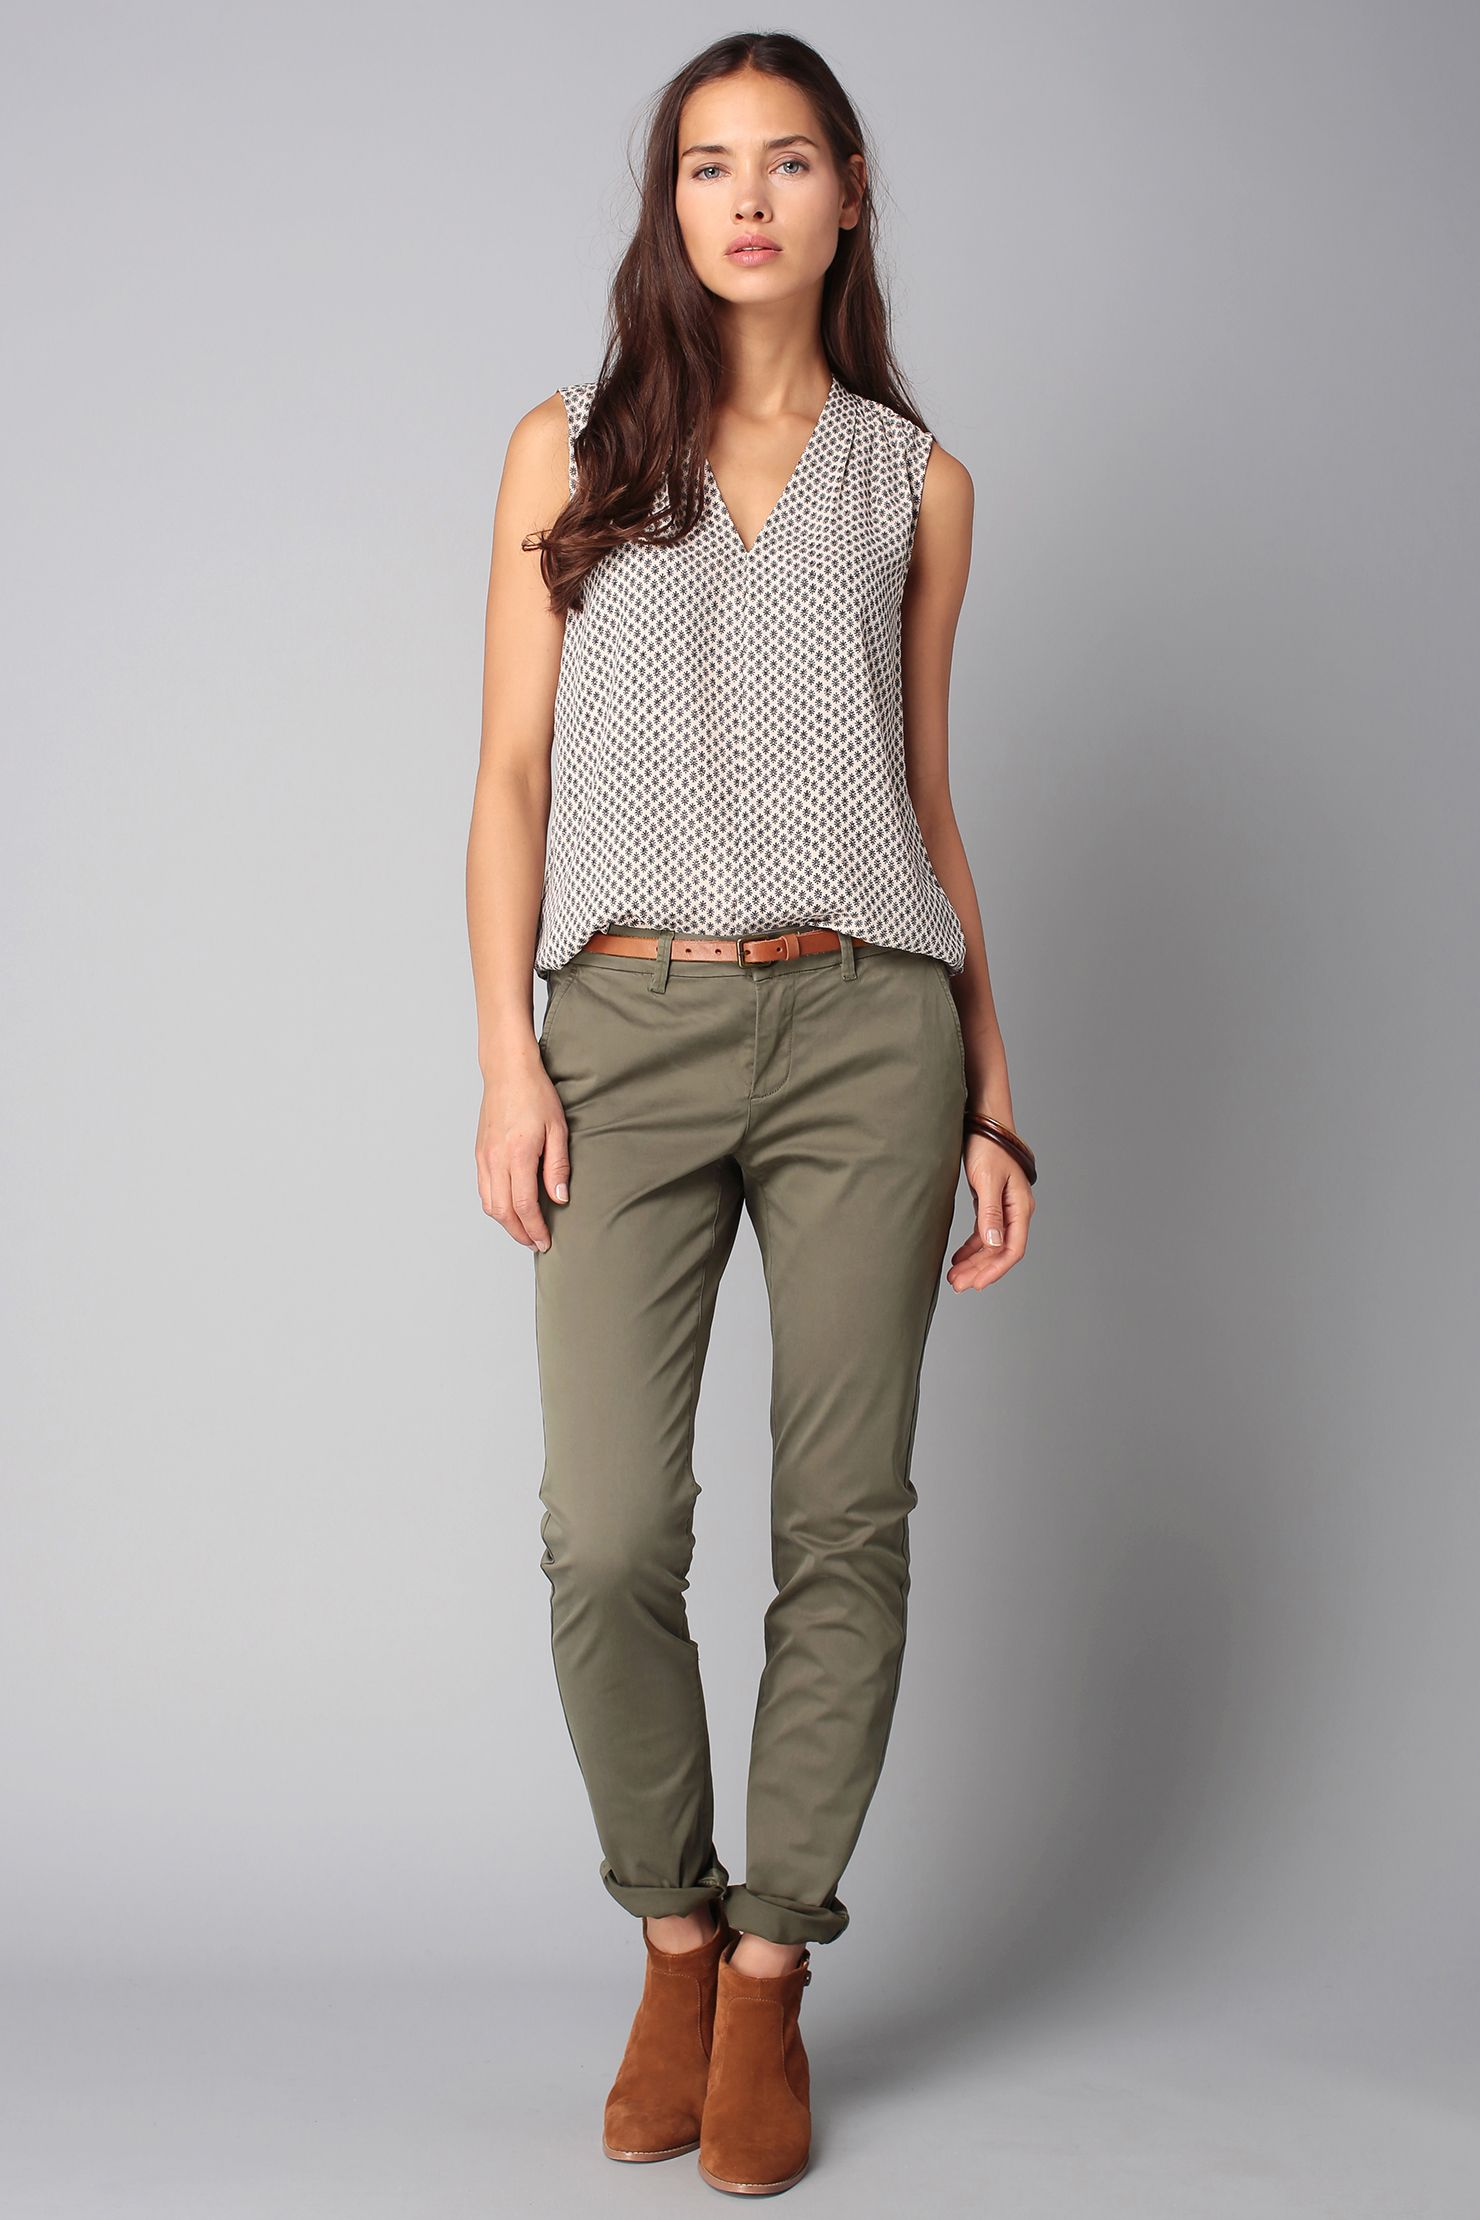 Chino kaki The Farrow Flimsy | Womens casual